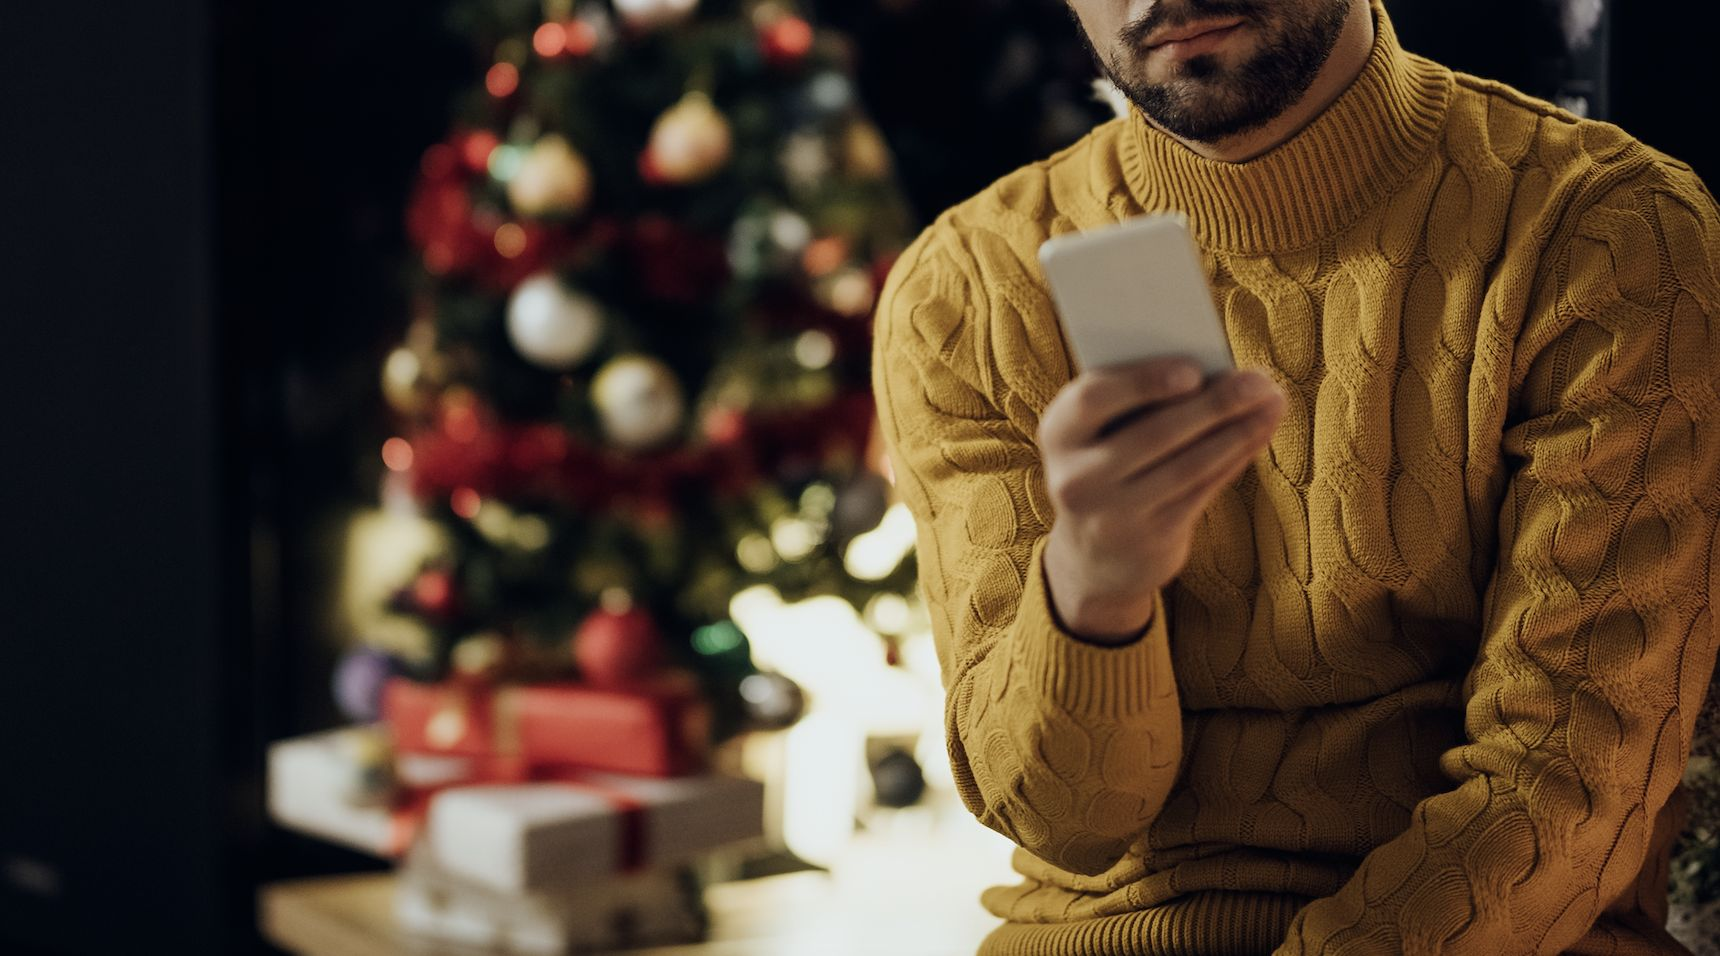 How do I survive the holidays right after a breakup?